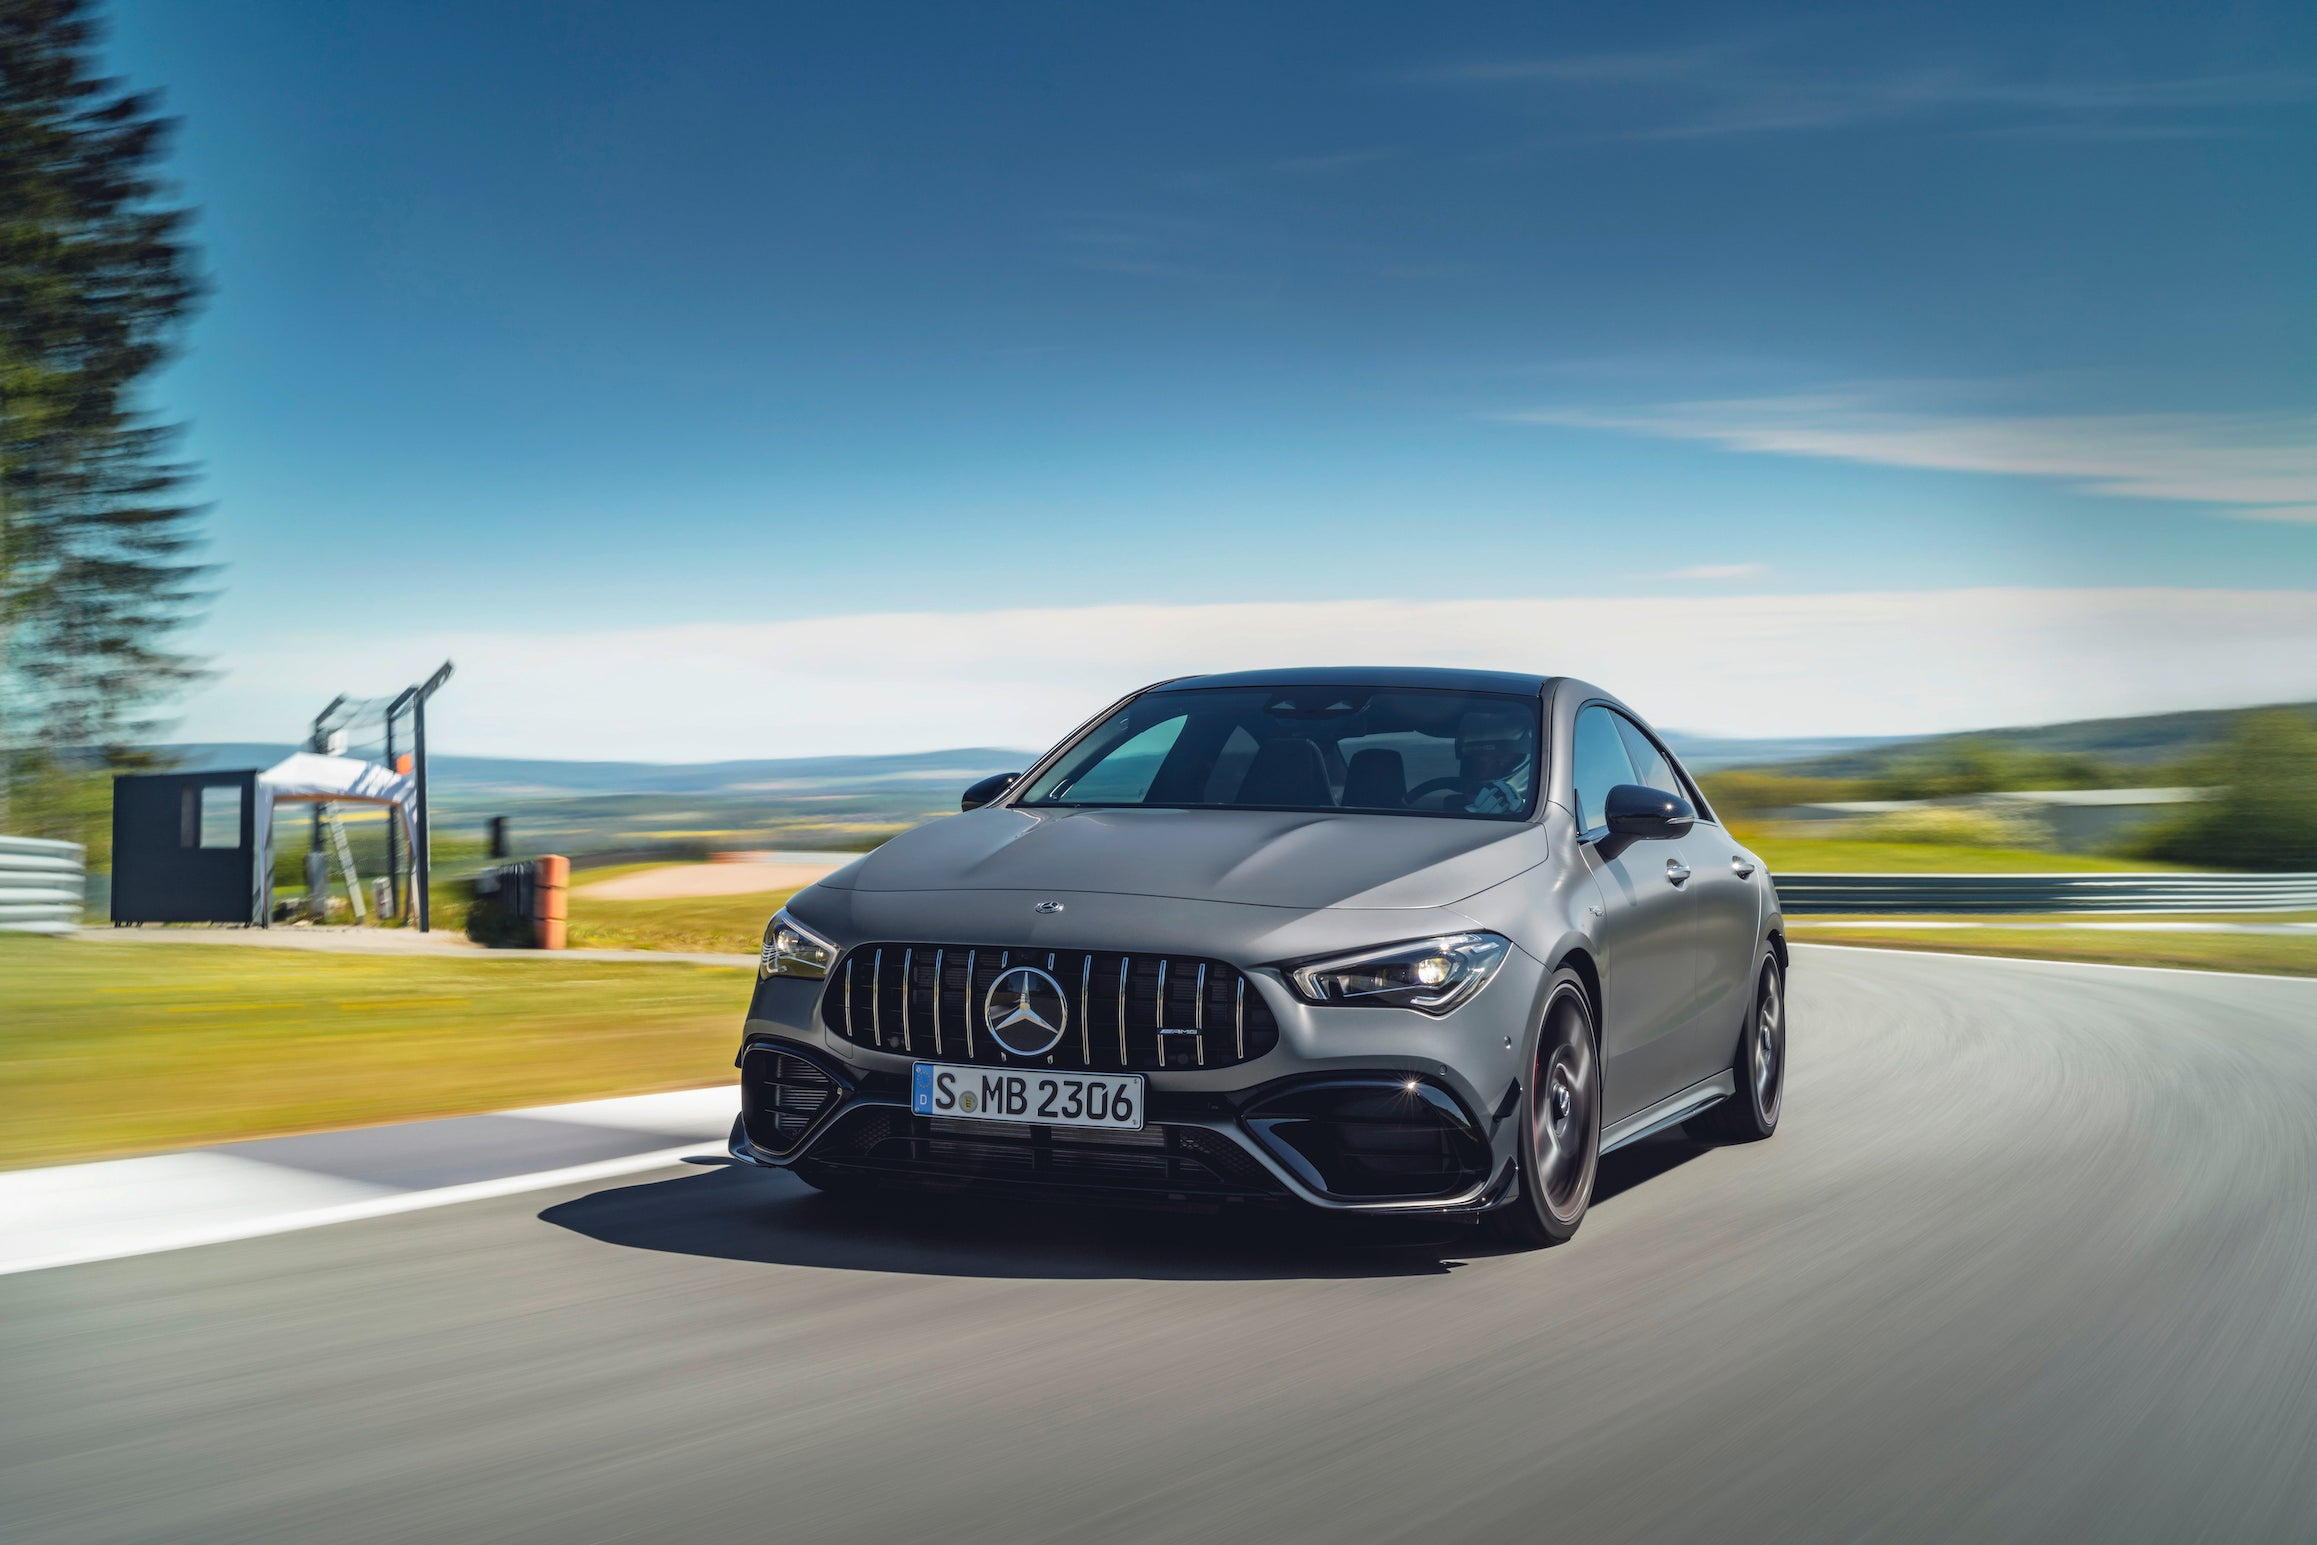 Mercedes-AMG A 45 S 4MATIC+ and CLA 45 S 4MATIC+ 2